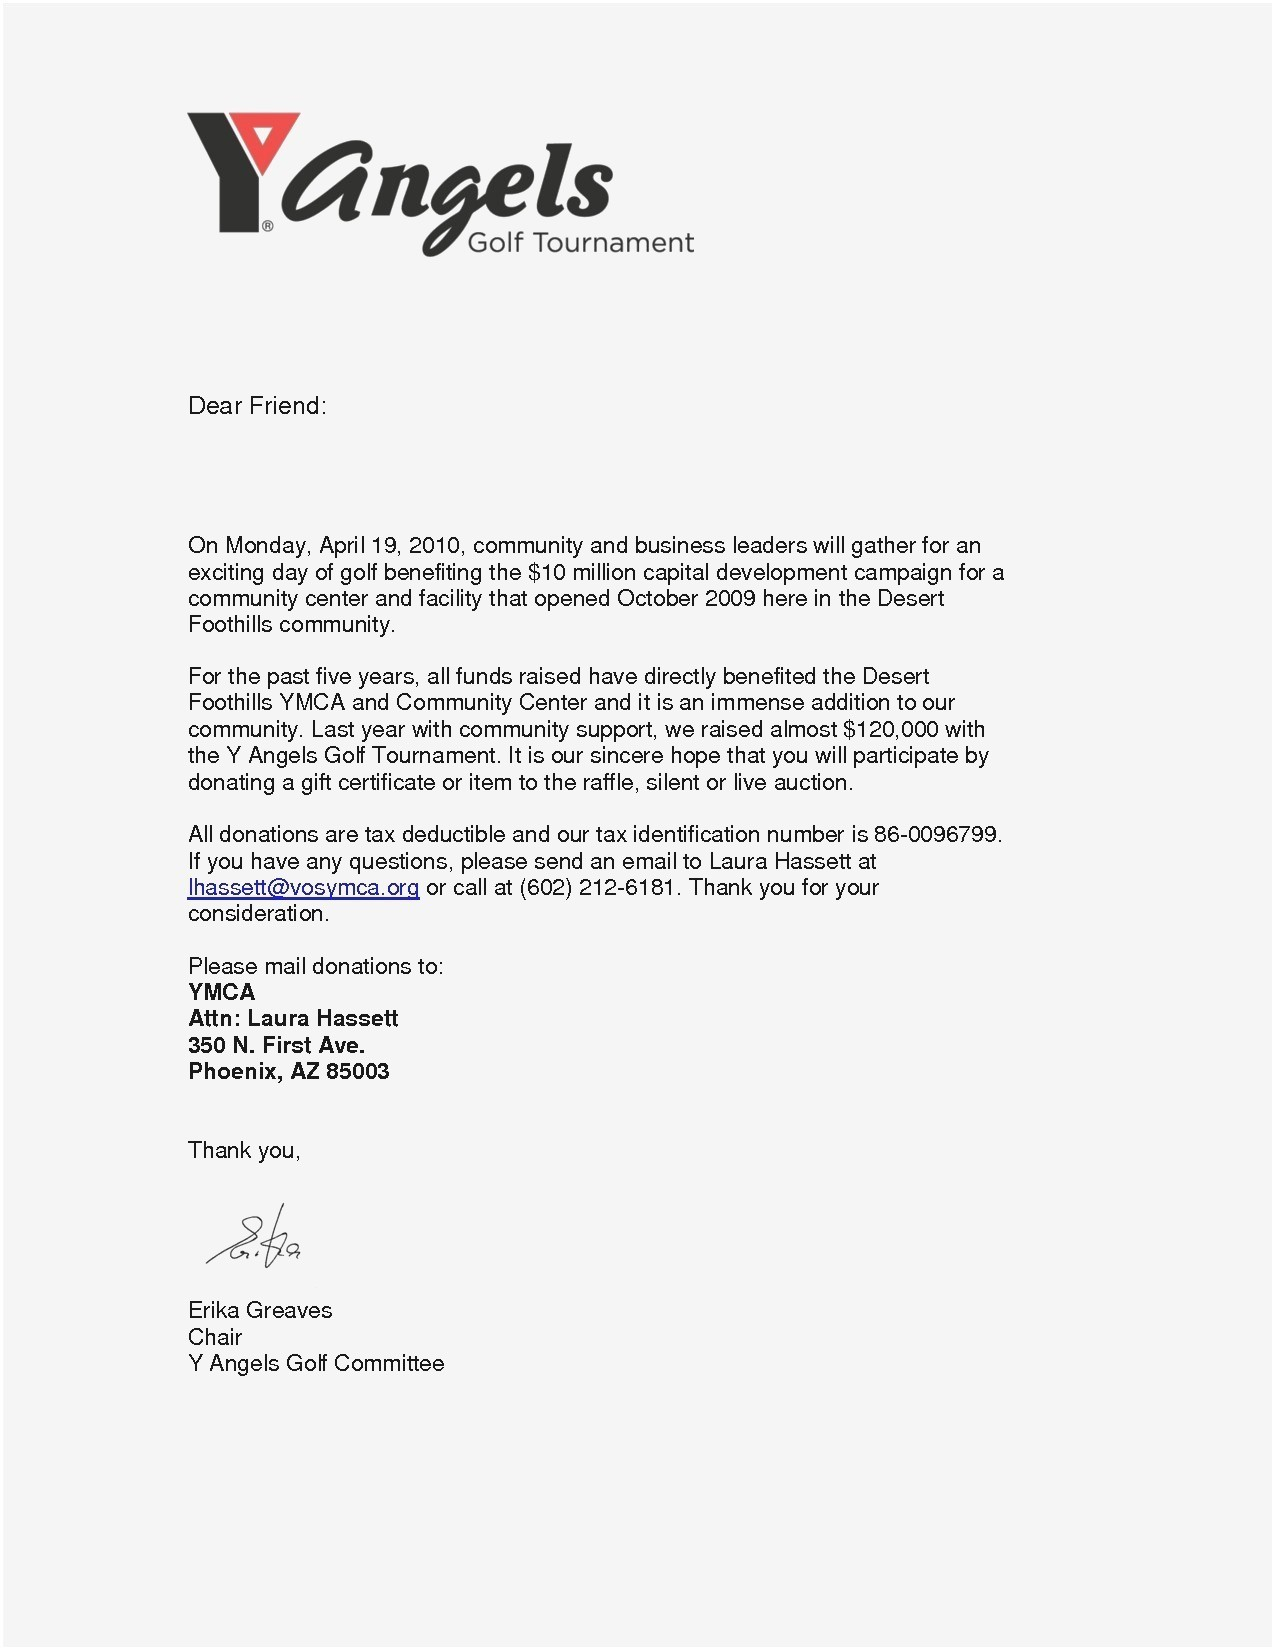 Golf tournament Donation Letter Template - Business Donation Letter Template Save Donation Request Letter